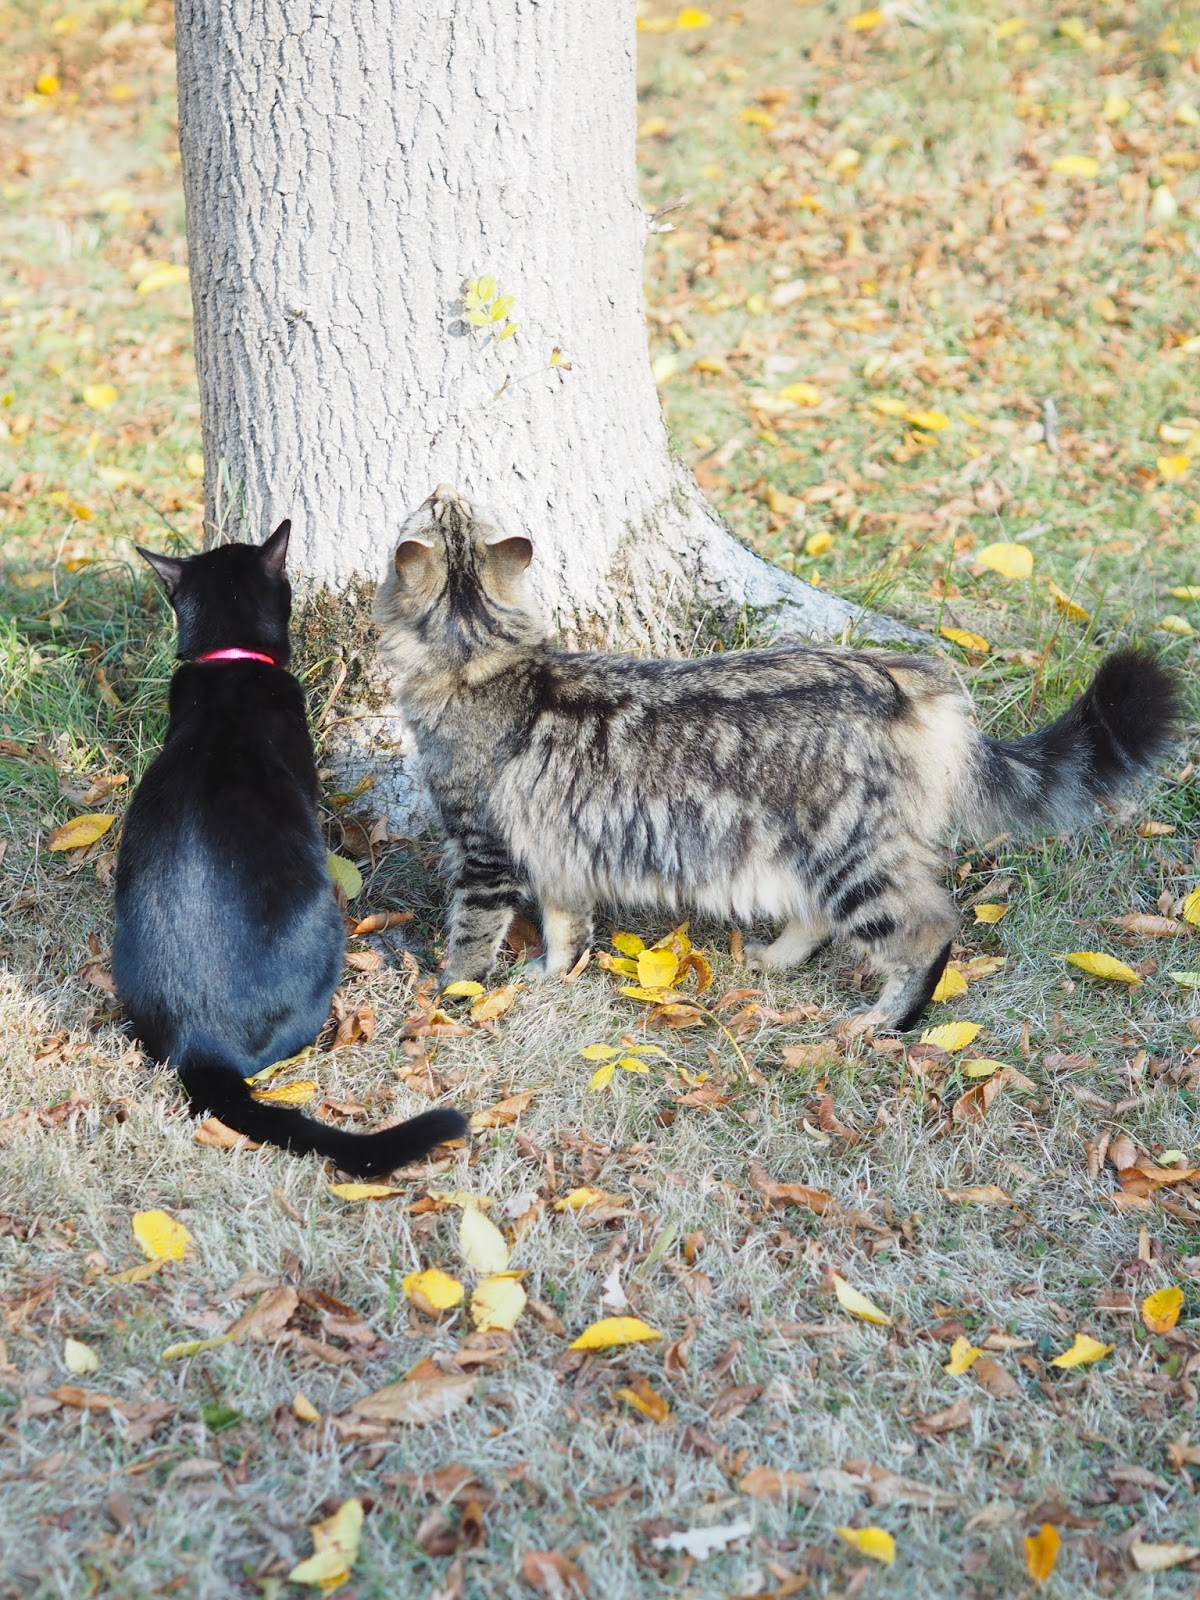 Kittens by the Tree